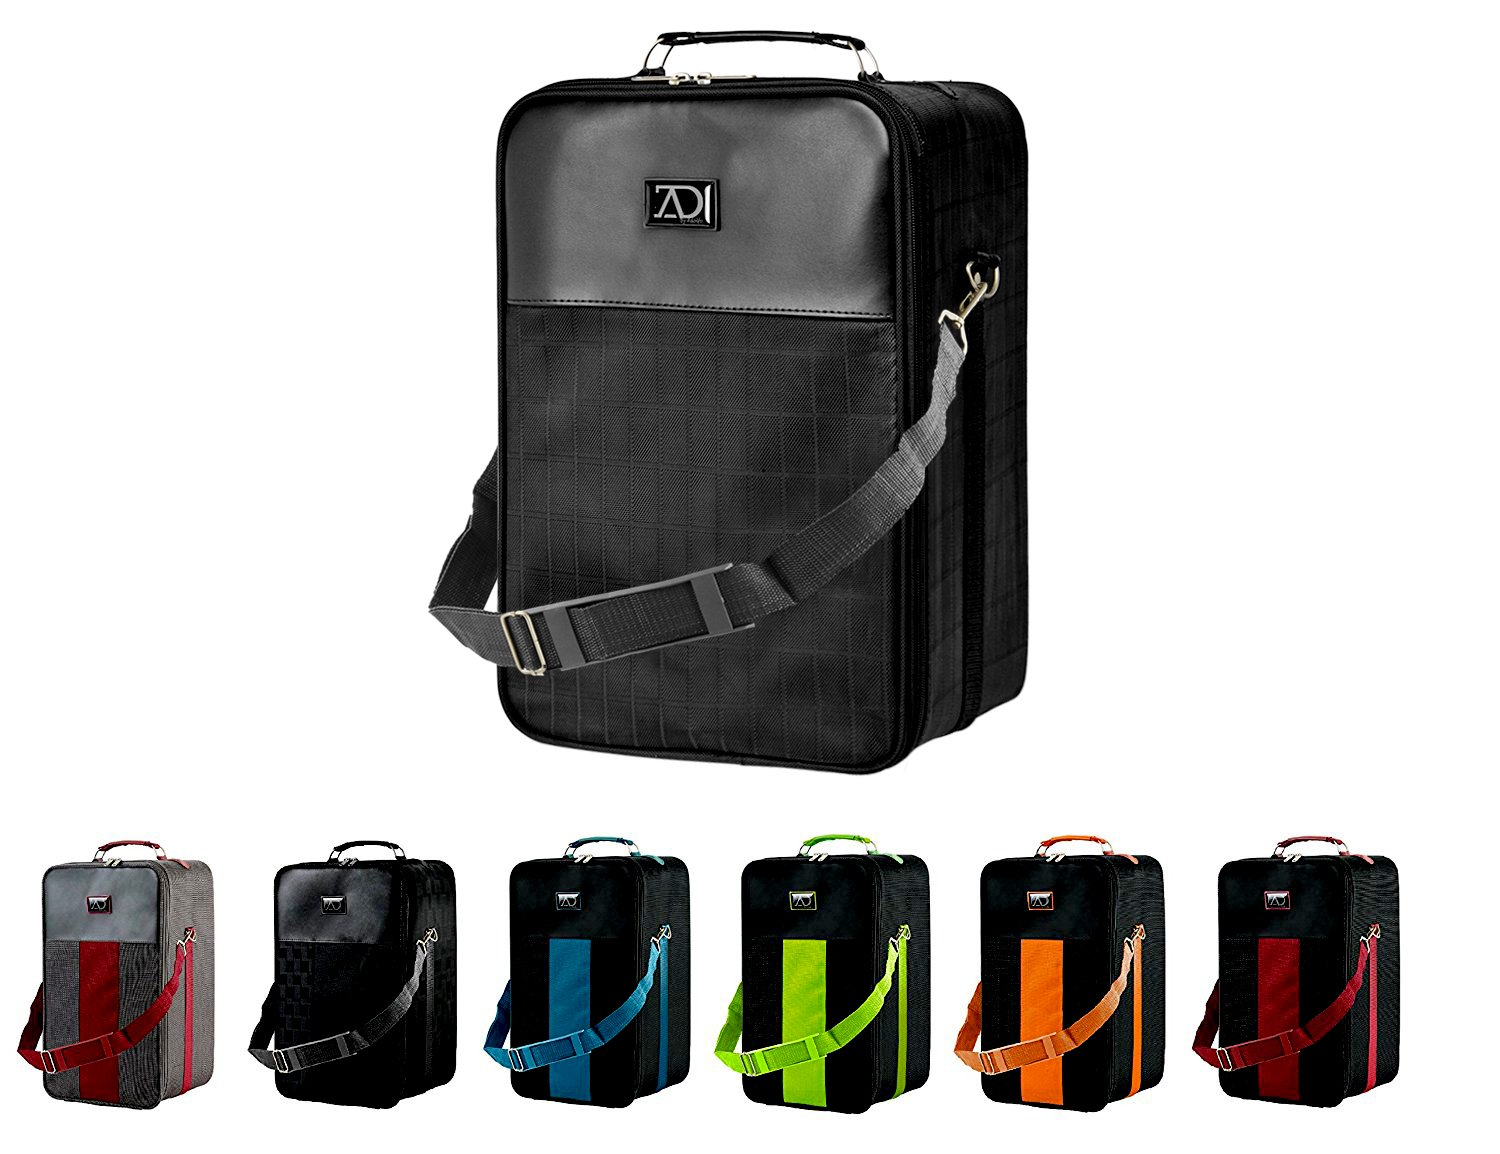 ddcd6fce24a2 Large Wig Travel Box with Top Handle, Shoulder Strap and Double Zipper,  Carrying Case with...